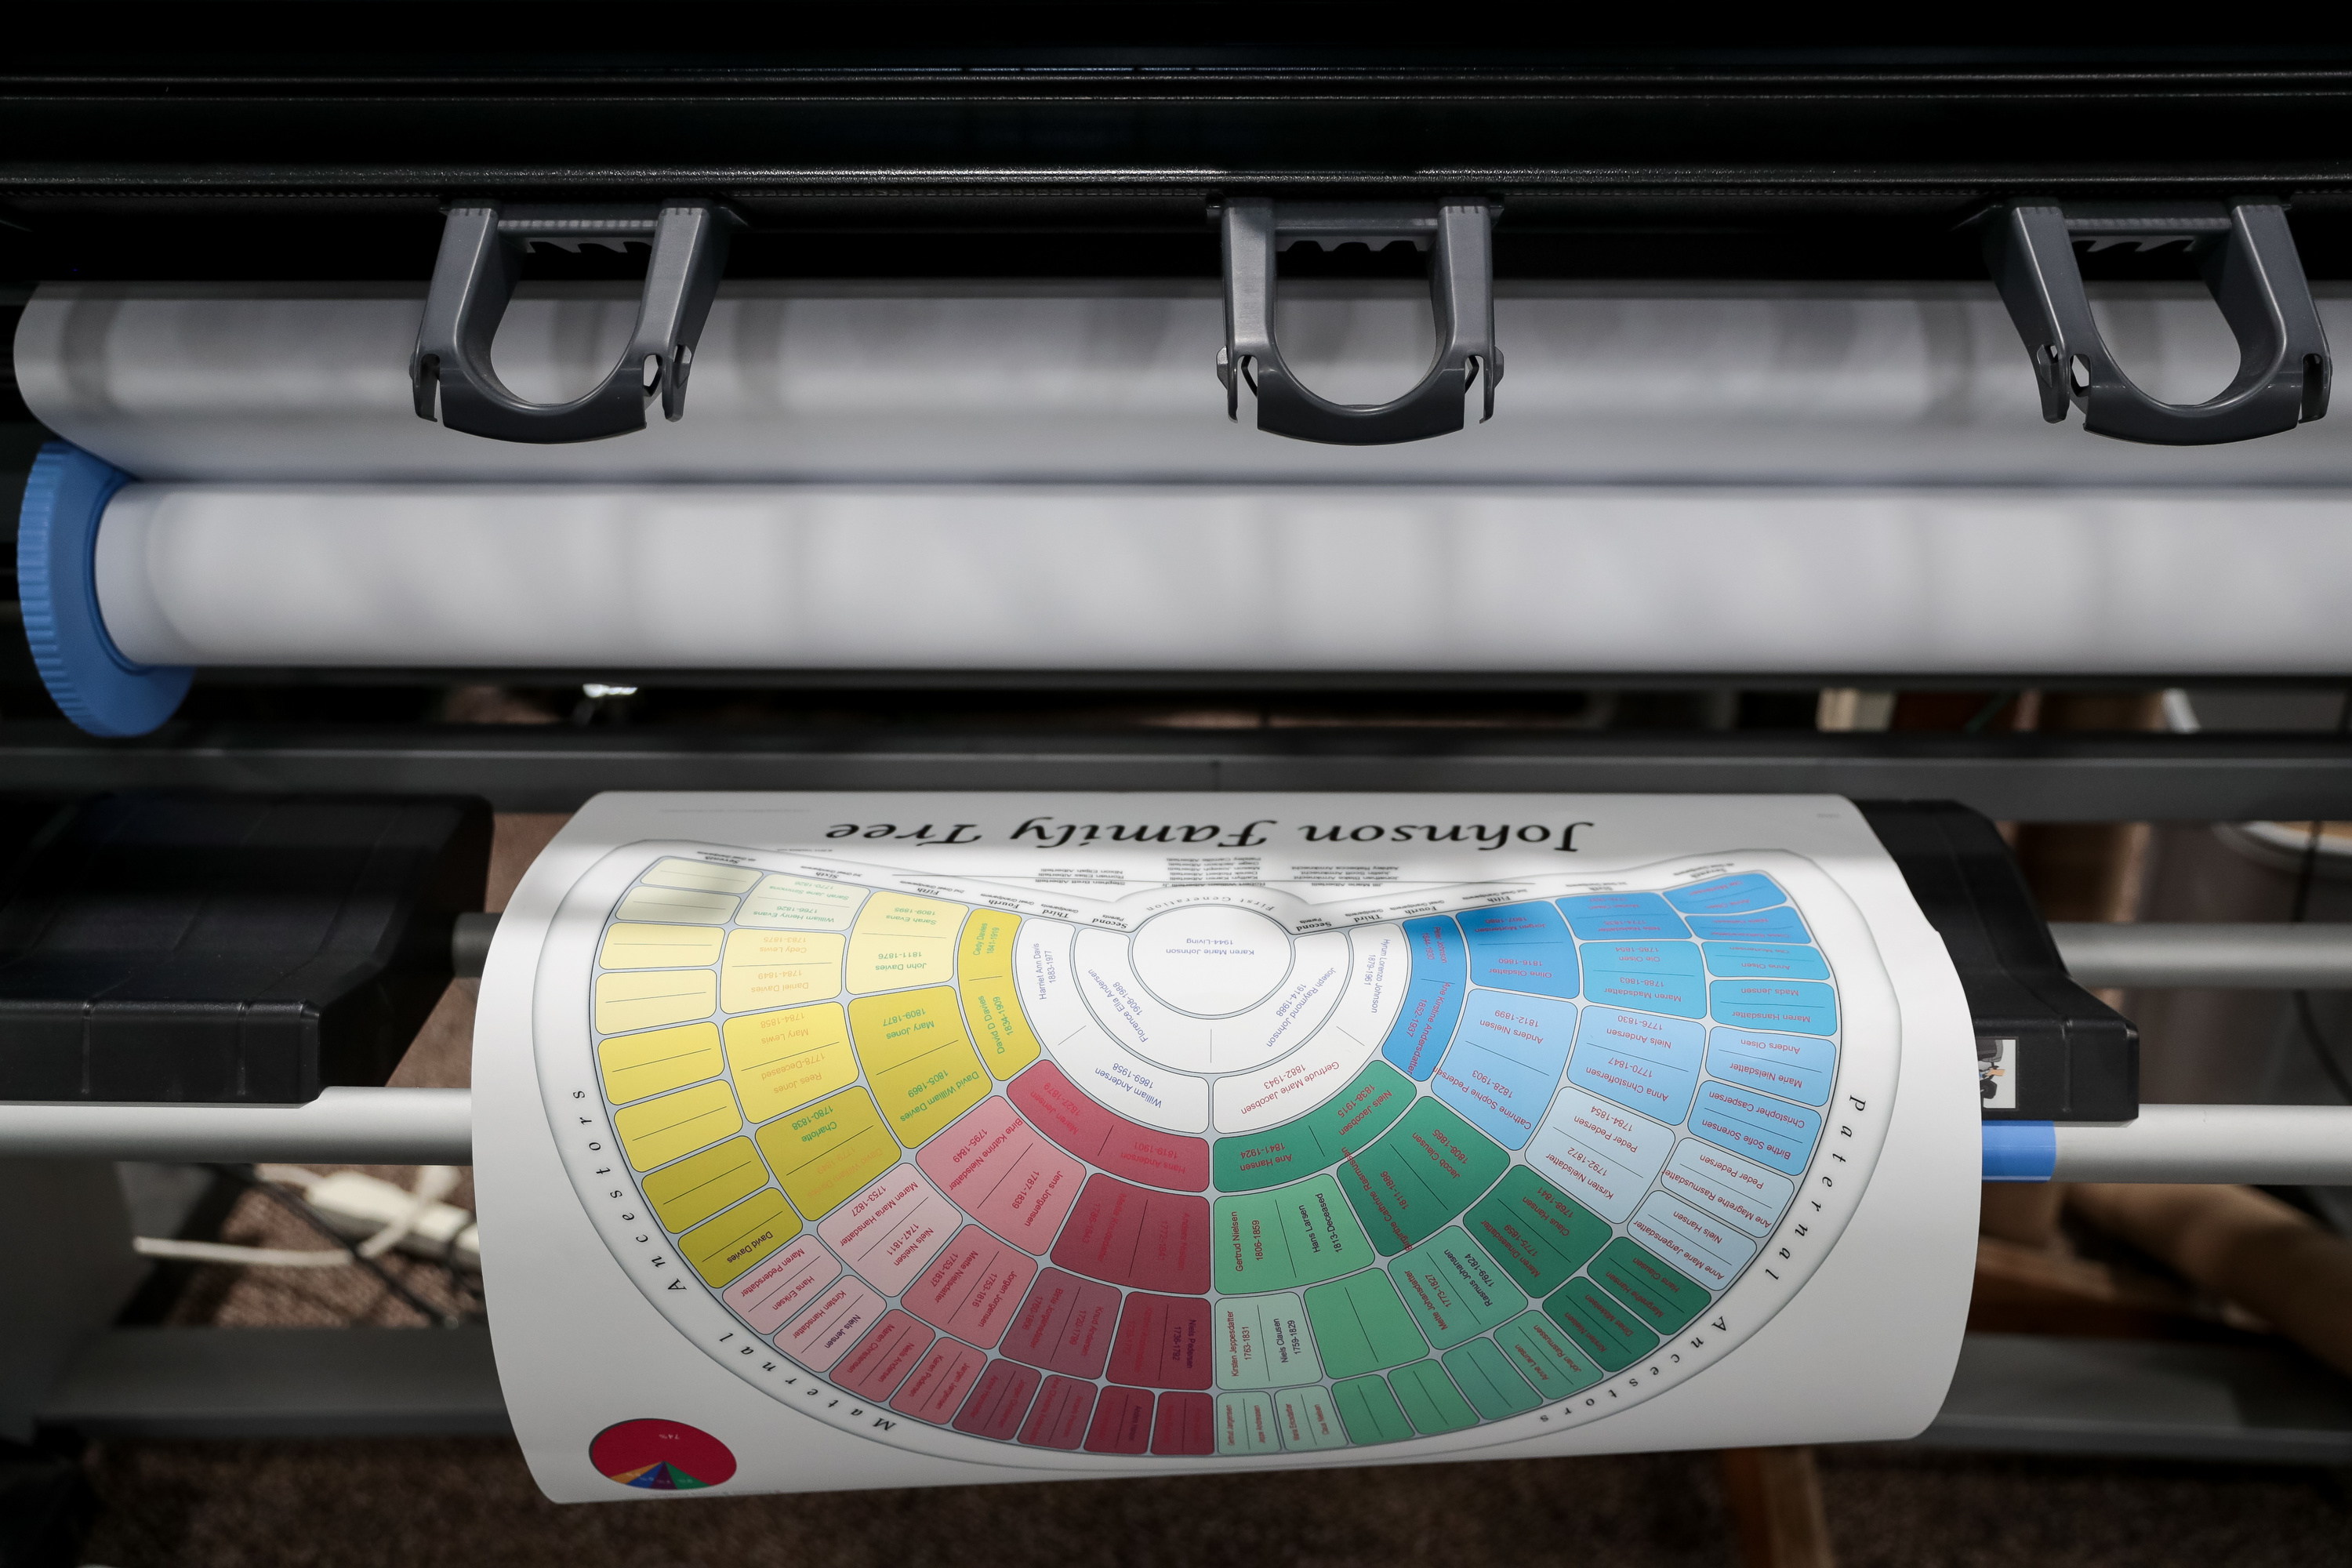 A printer spits out genealogy charts at the RootsTech conference at the Salt Palace in Salt Lake City on Friday, March 1, 2019.